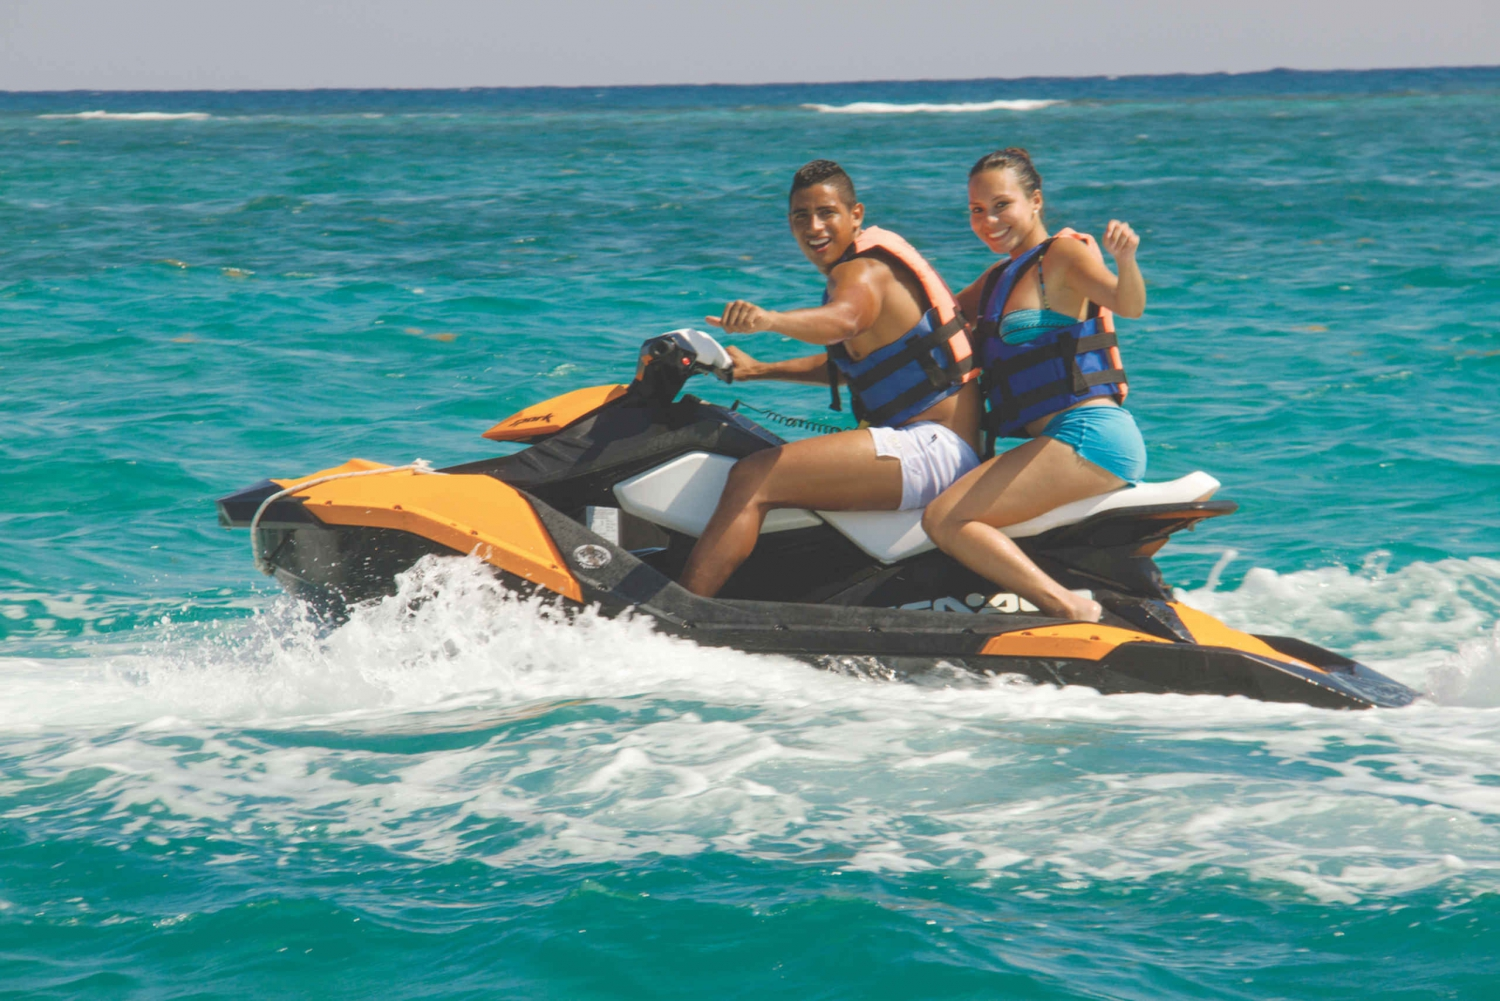 From Cancun and ATV and Jet Ski Adventure